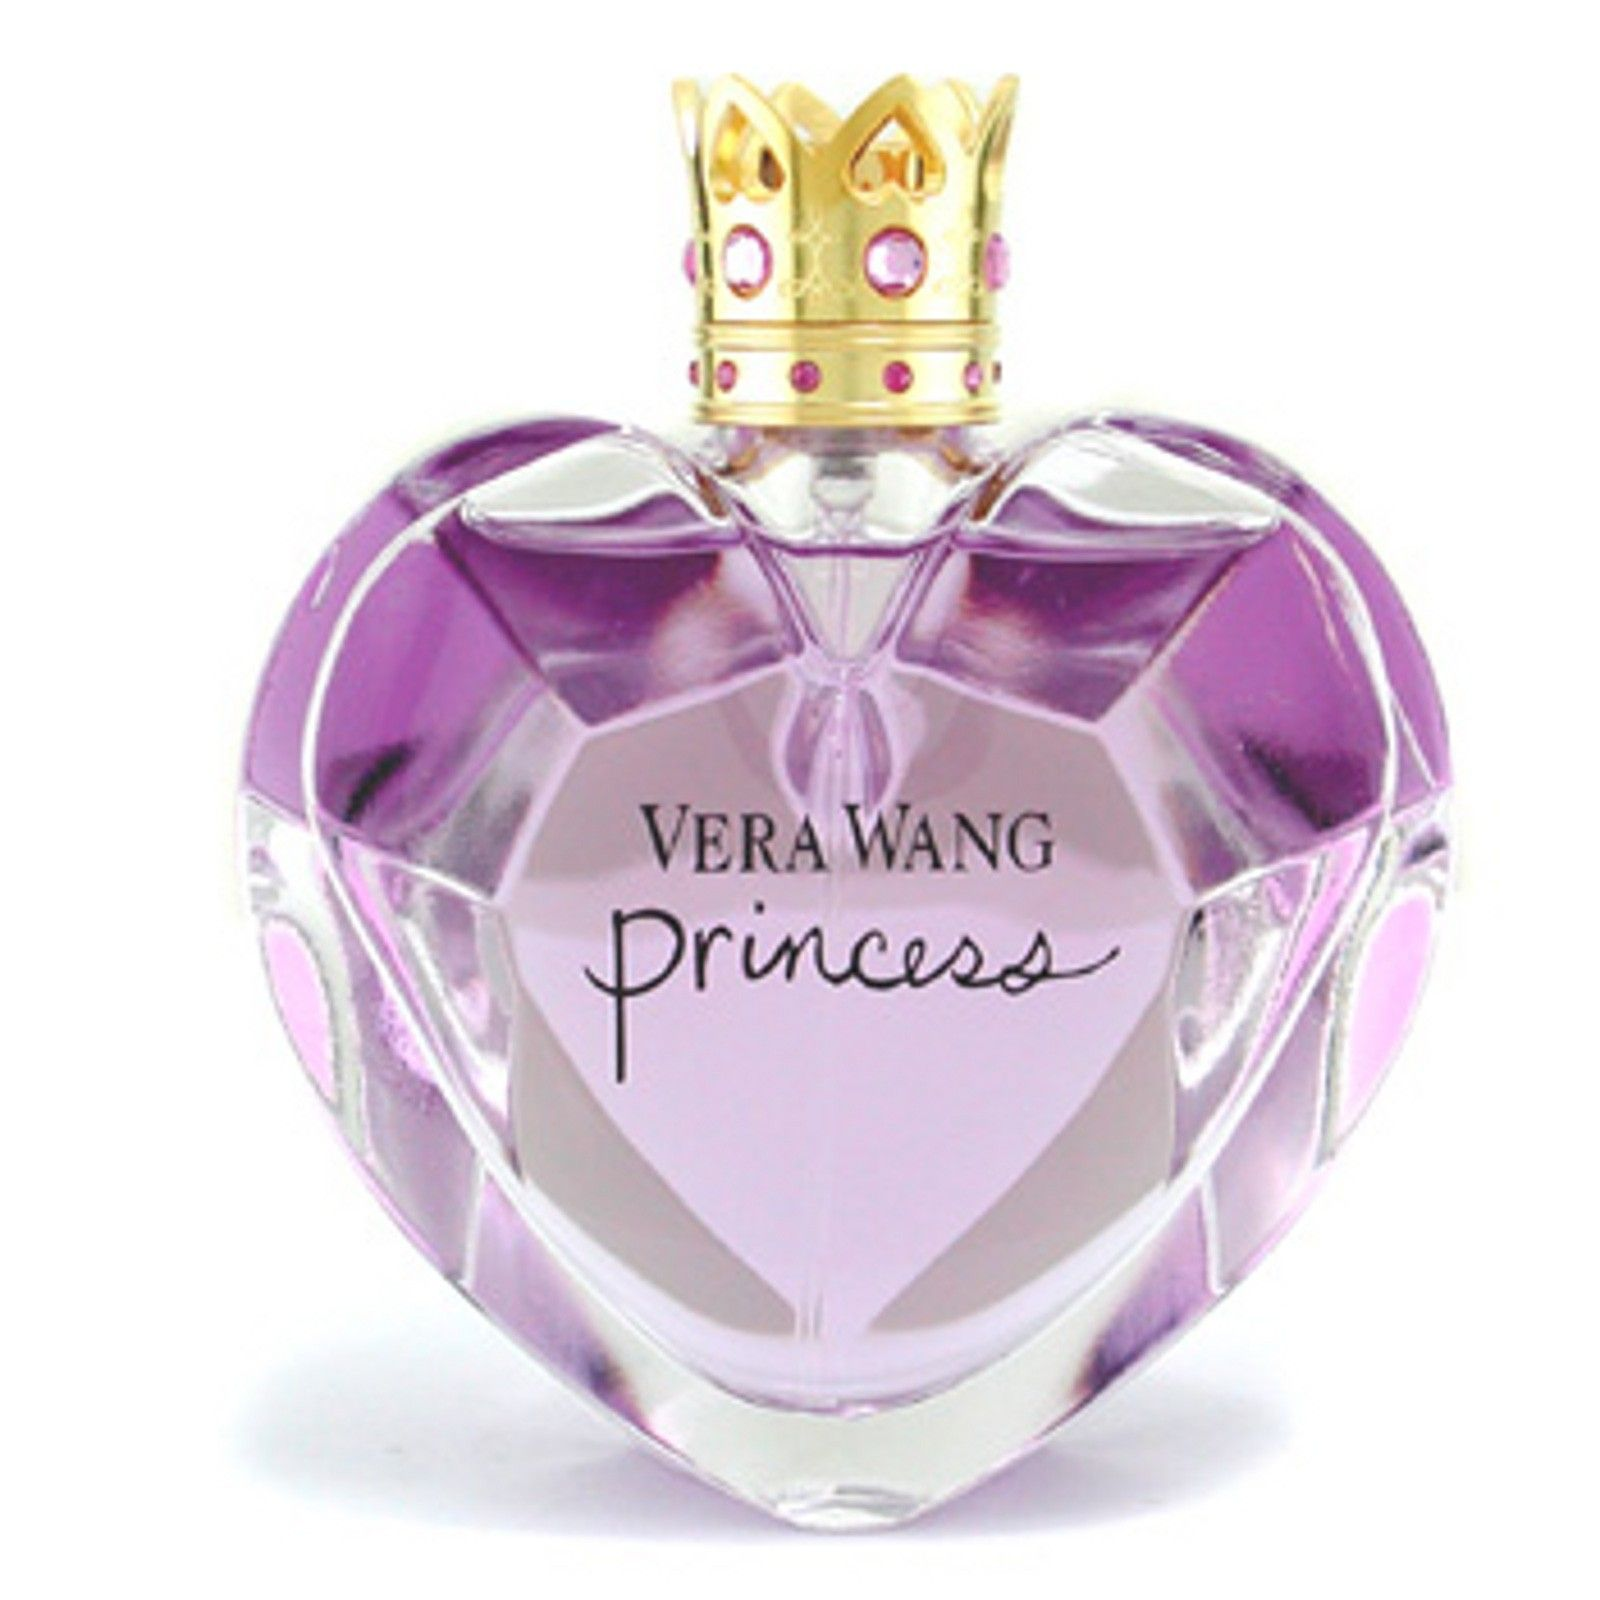 PRINCESS by Vera Wang for women EDT 3.3 3.4 oz New Tester